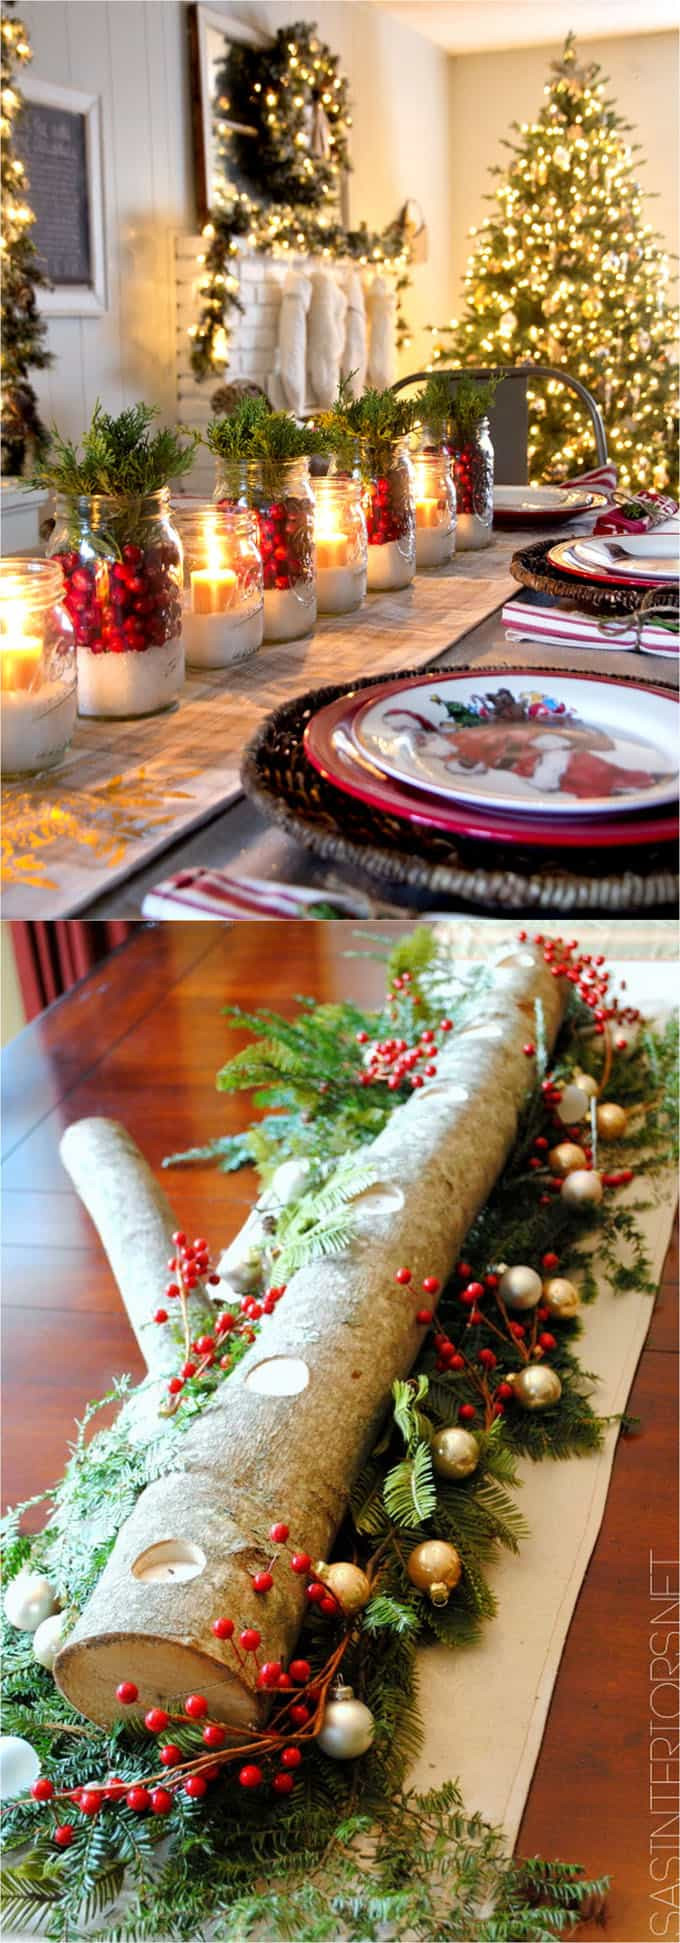 Diy Thanksgiving Table Decorations  27 Gorgeous DIY Thanksgiving & Christmas Table Decorations